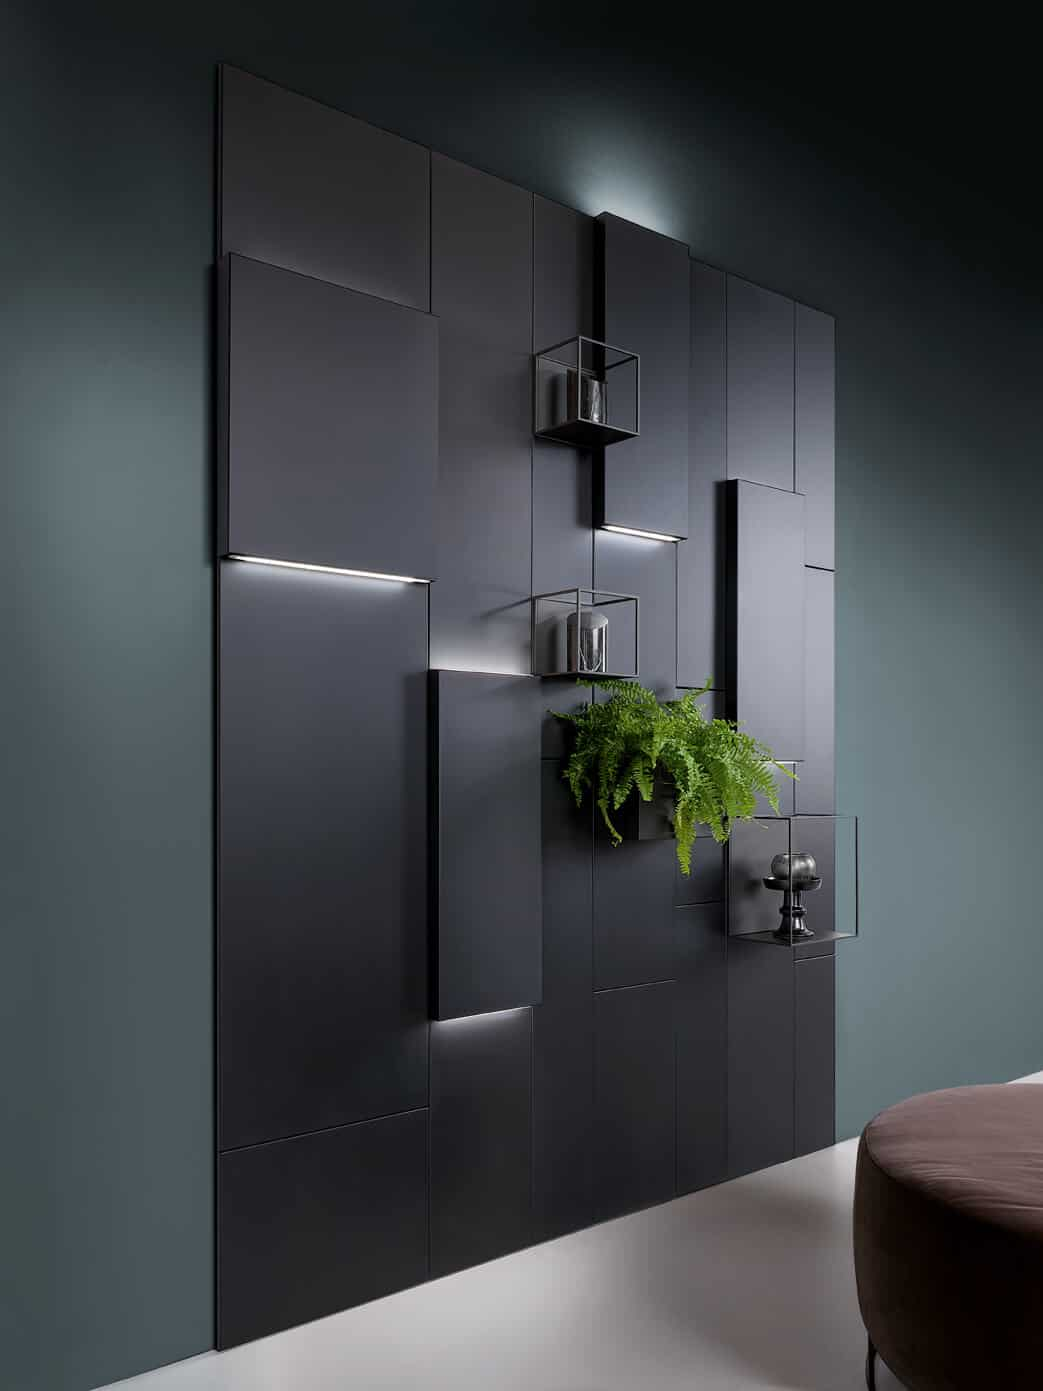 black pvc panels on a dark green background with concealed lights